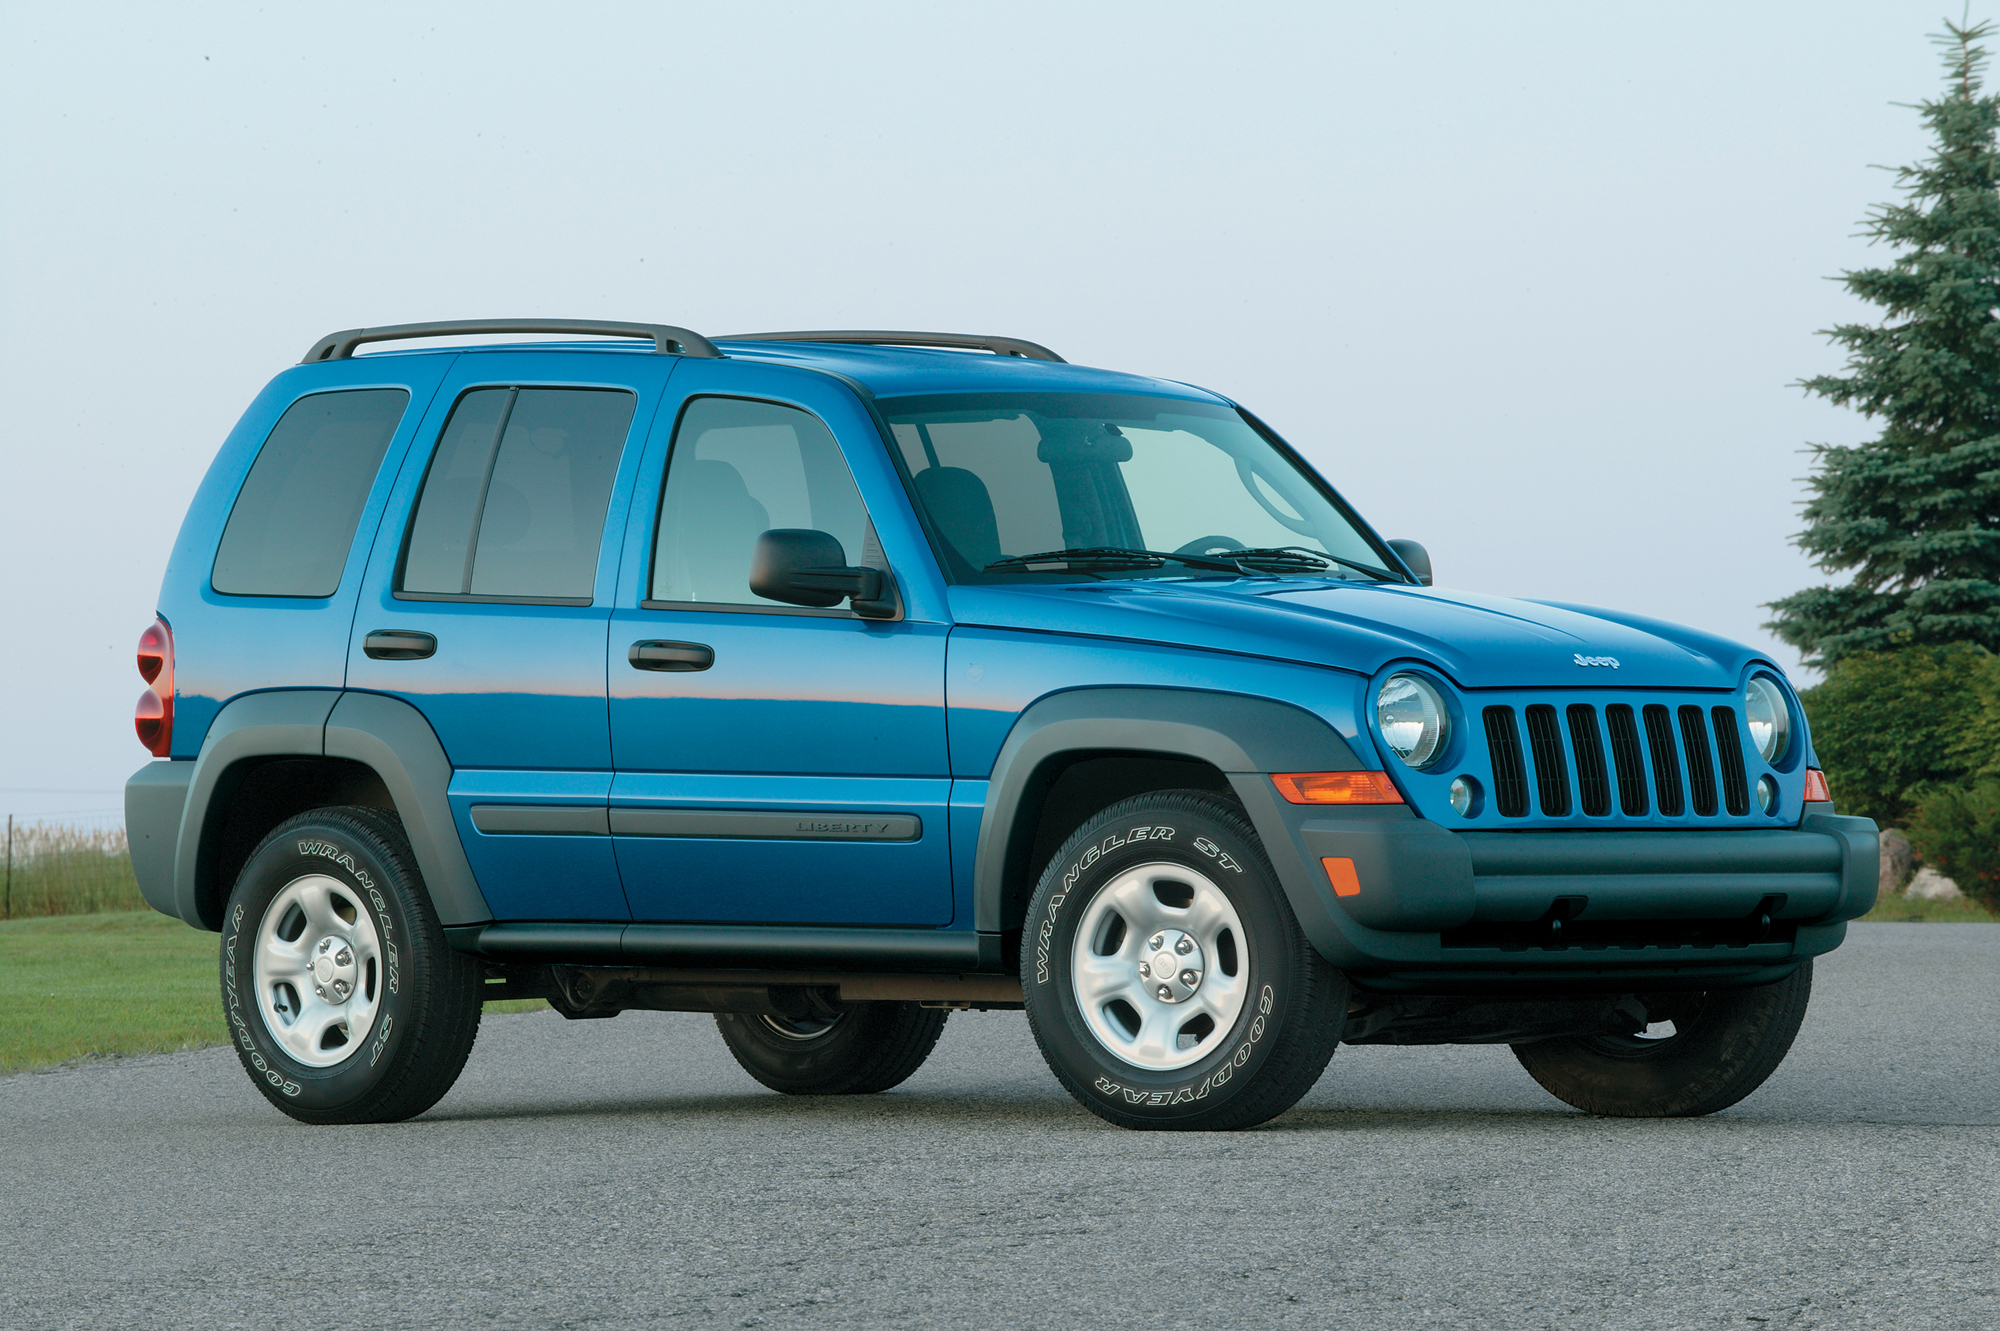 chrysler recalls 210 000 jeep suvs for corrosion issue. Black Bedroom Furniture Sets. Home Design Ideas